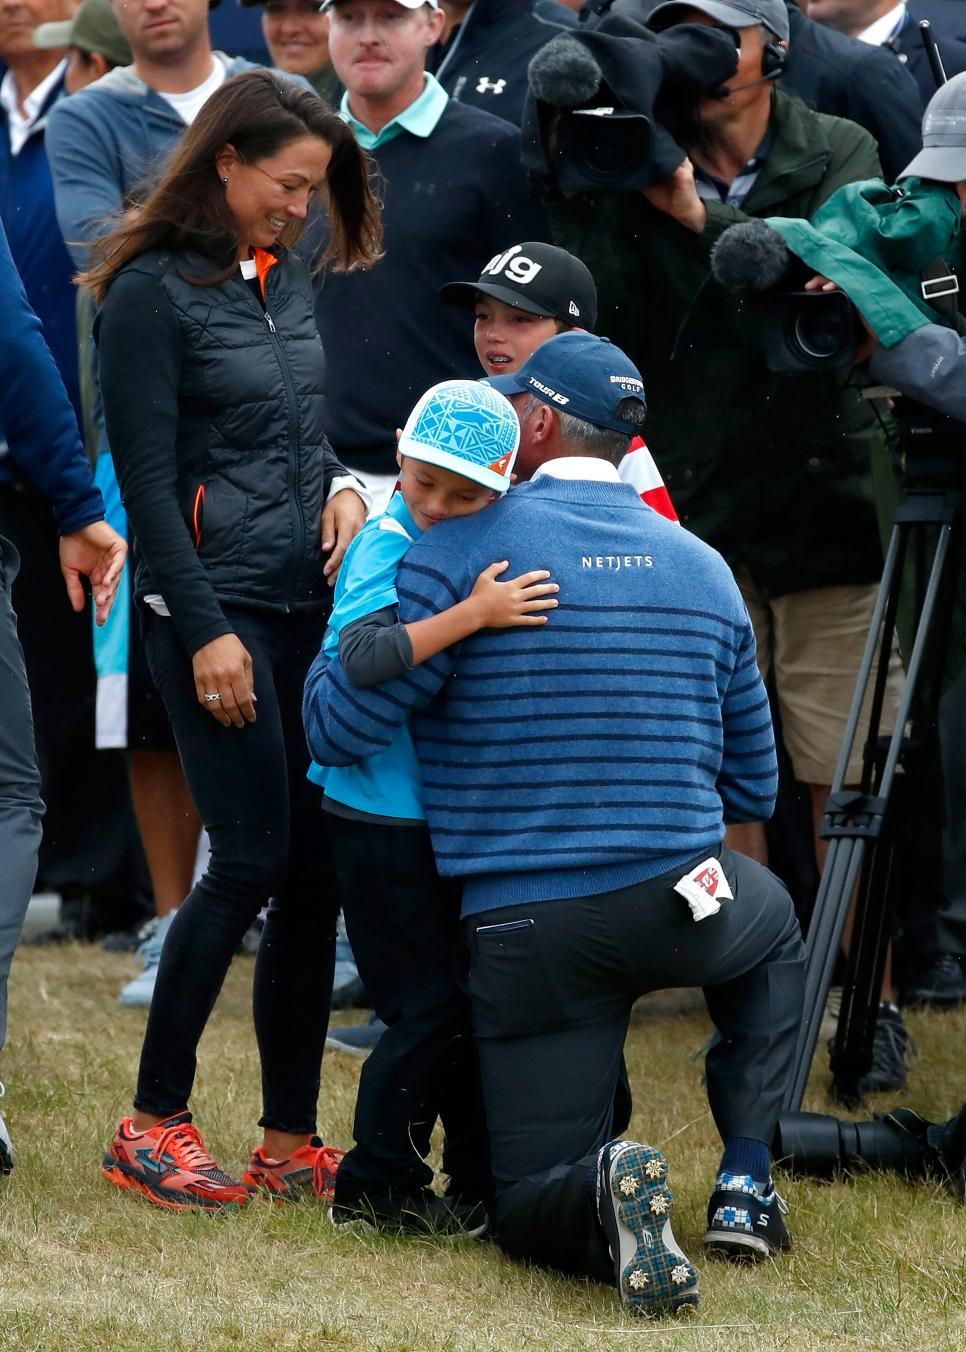 matt-kuchar-british-open-2017-sunday-family.jpg